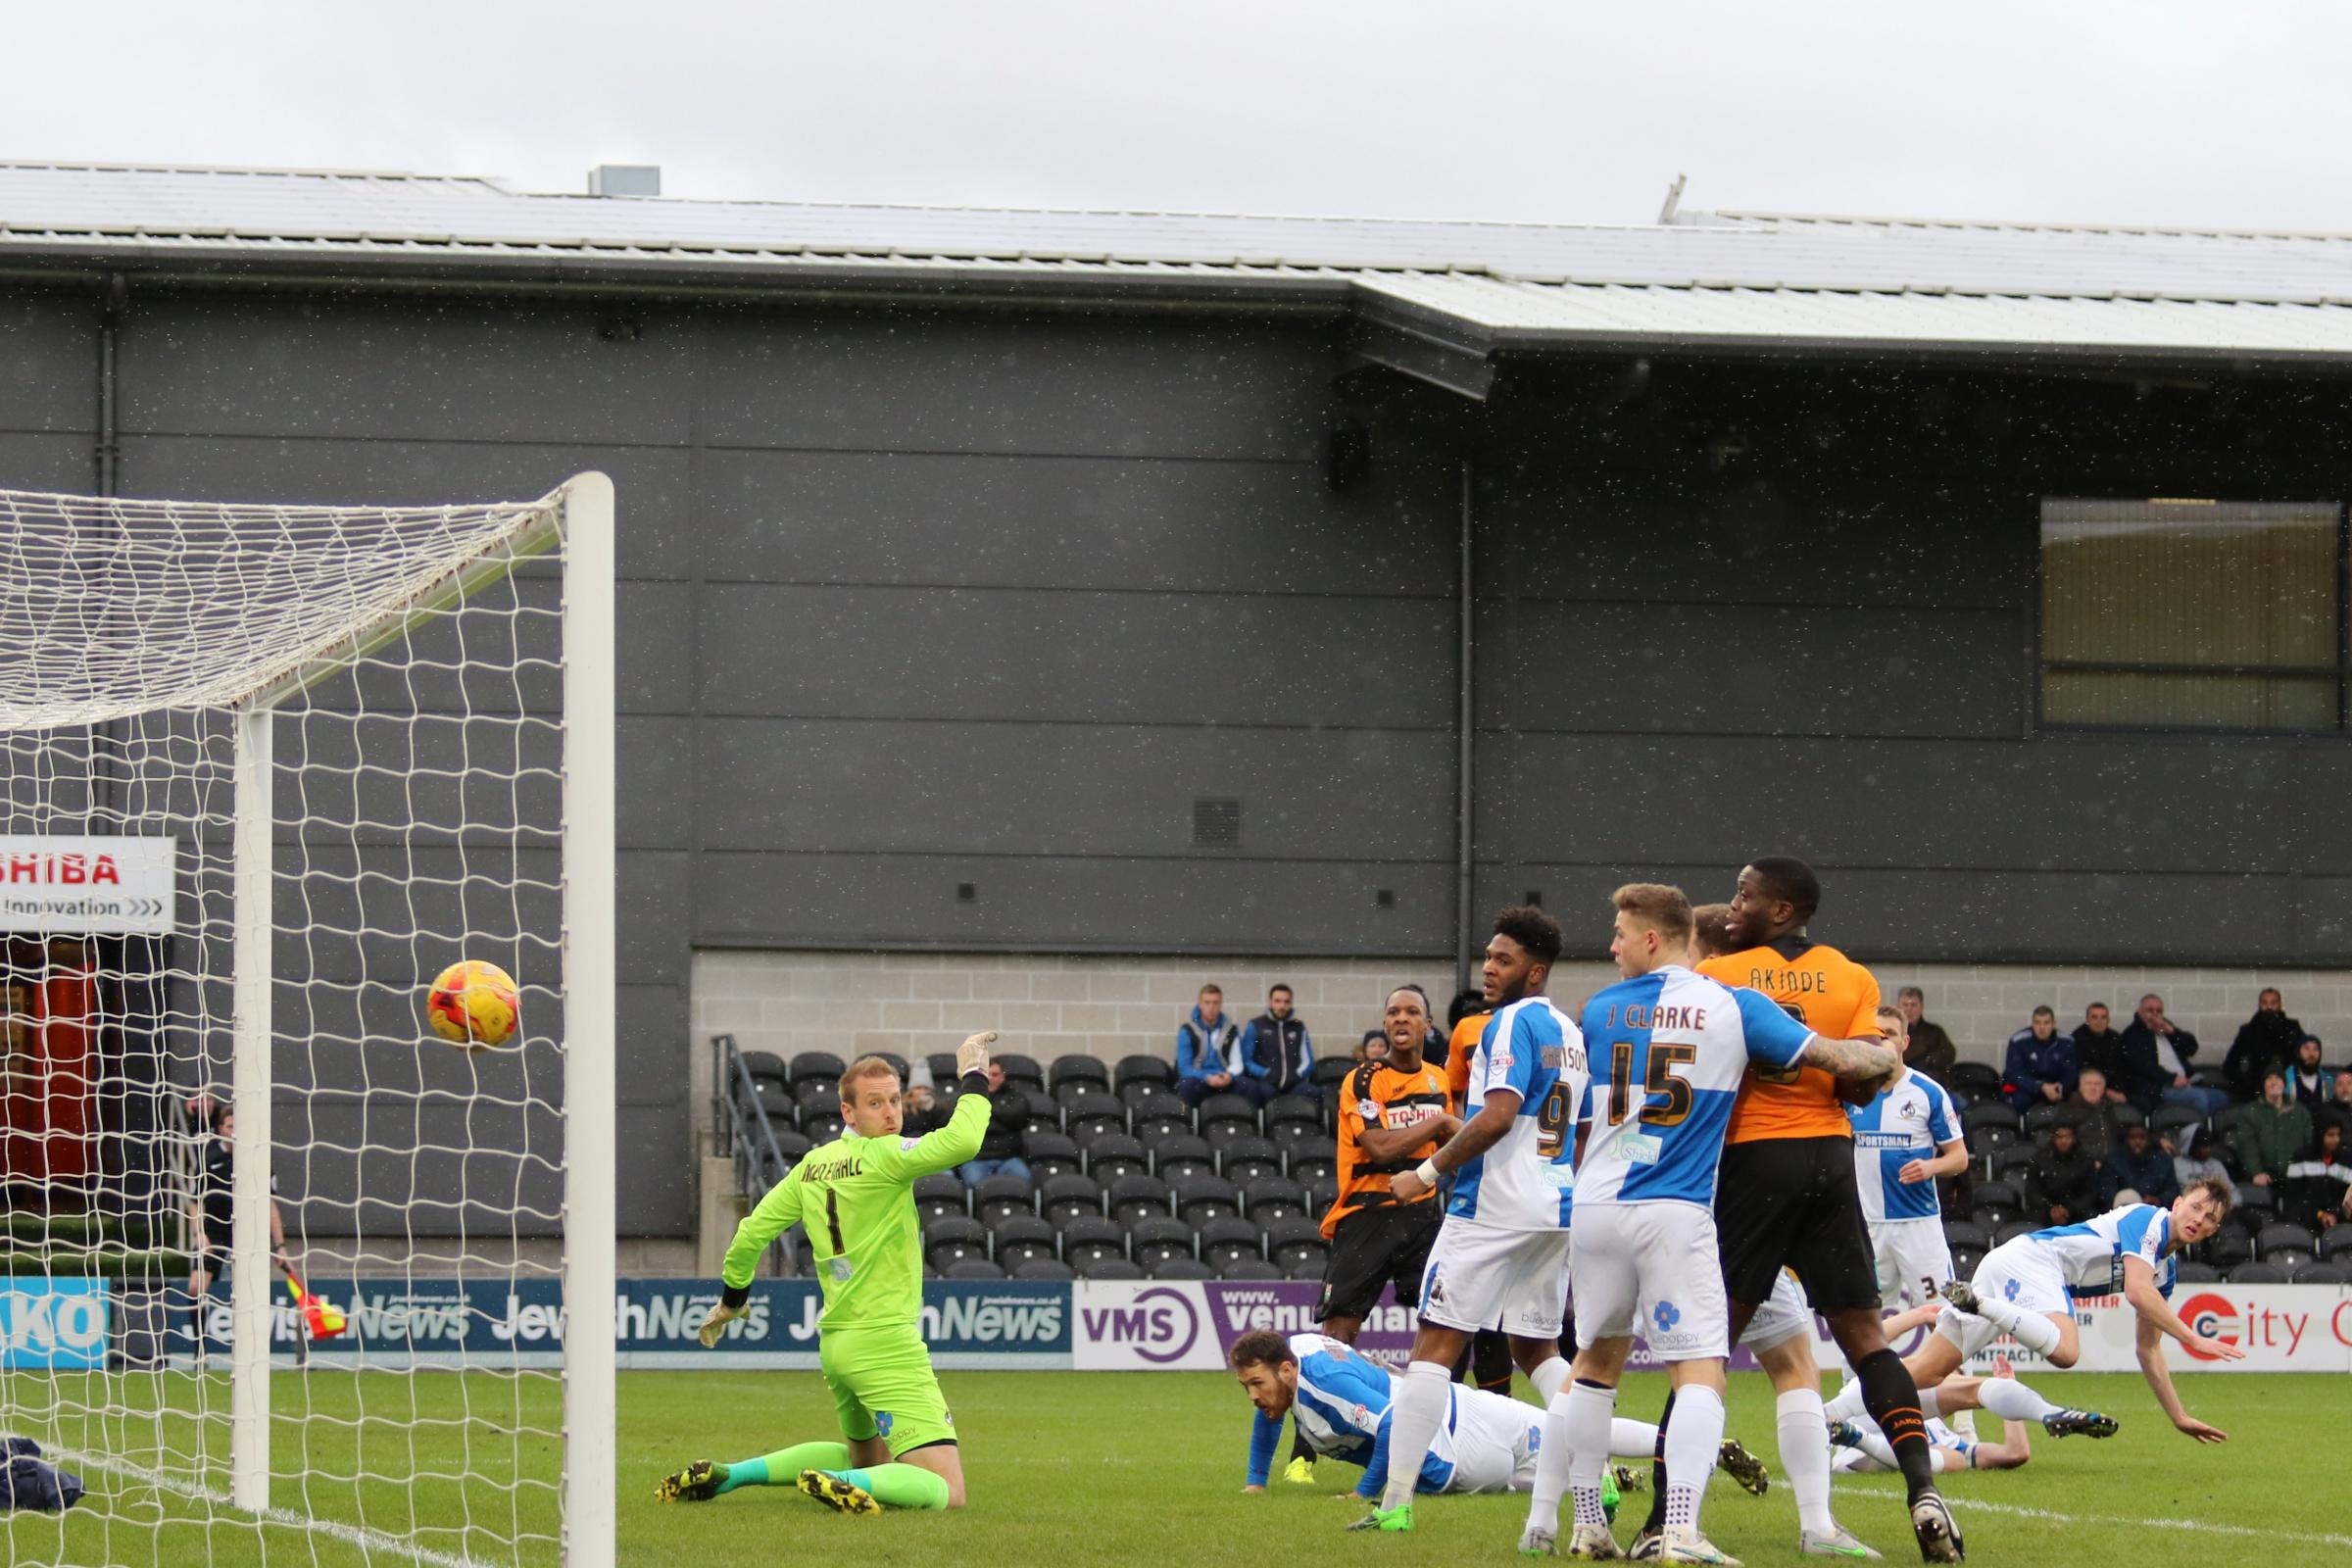 Gavin Hoyte scores to give Barnet three points against Bristol Rovers. Picture: Len Kerswill